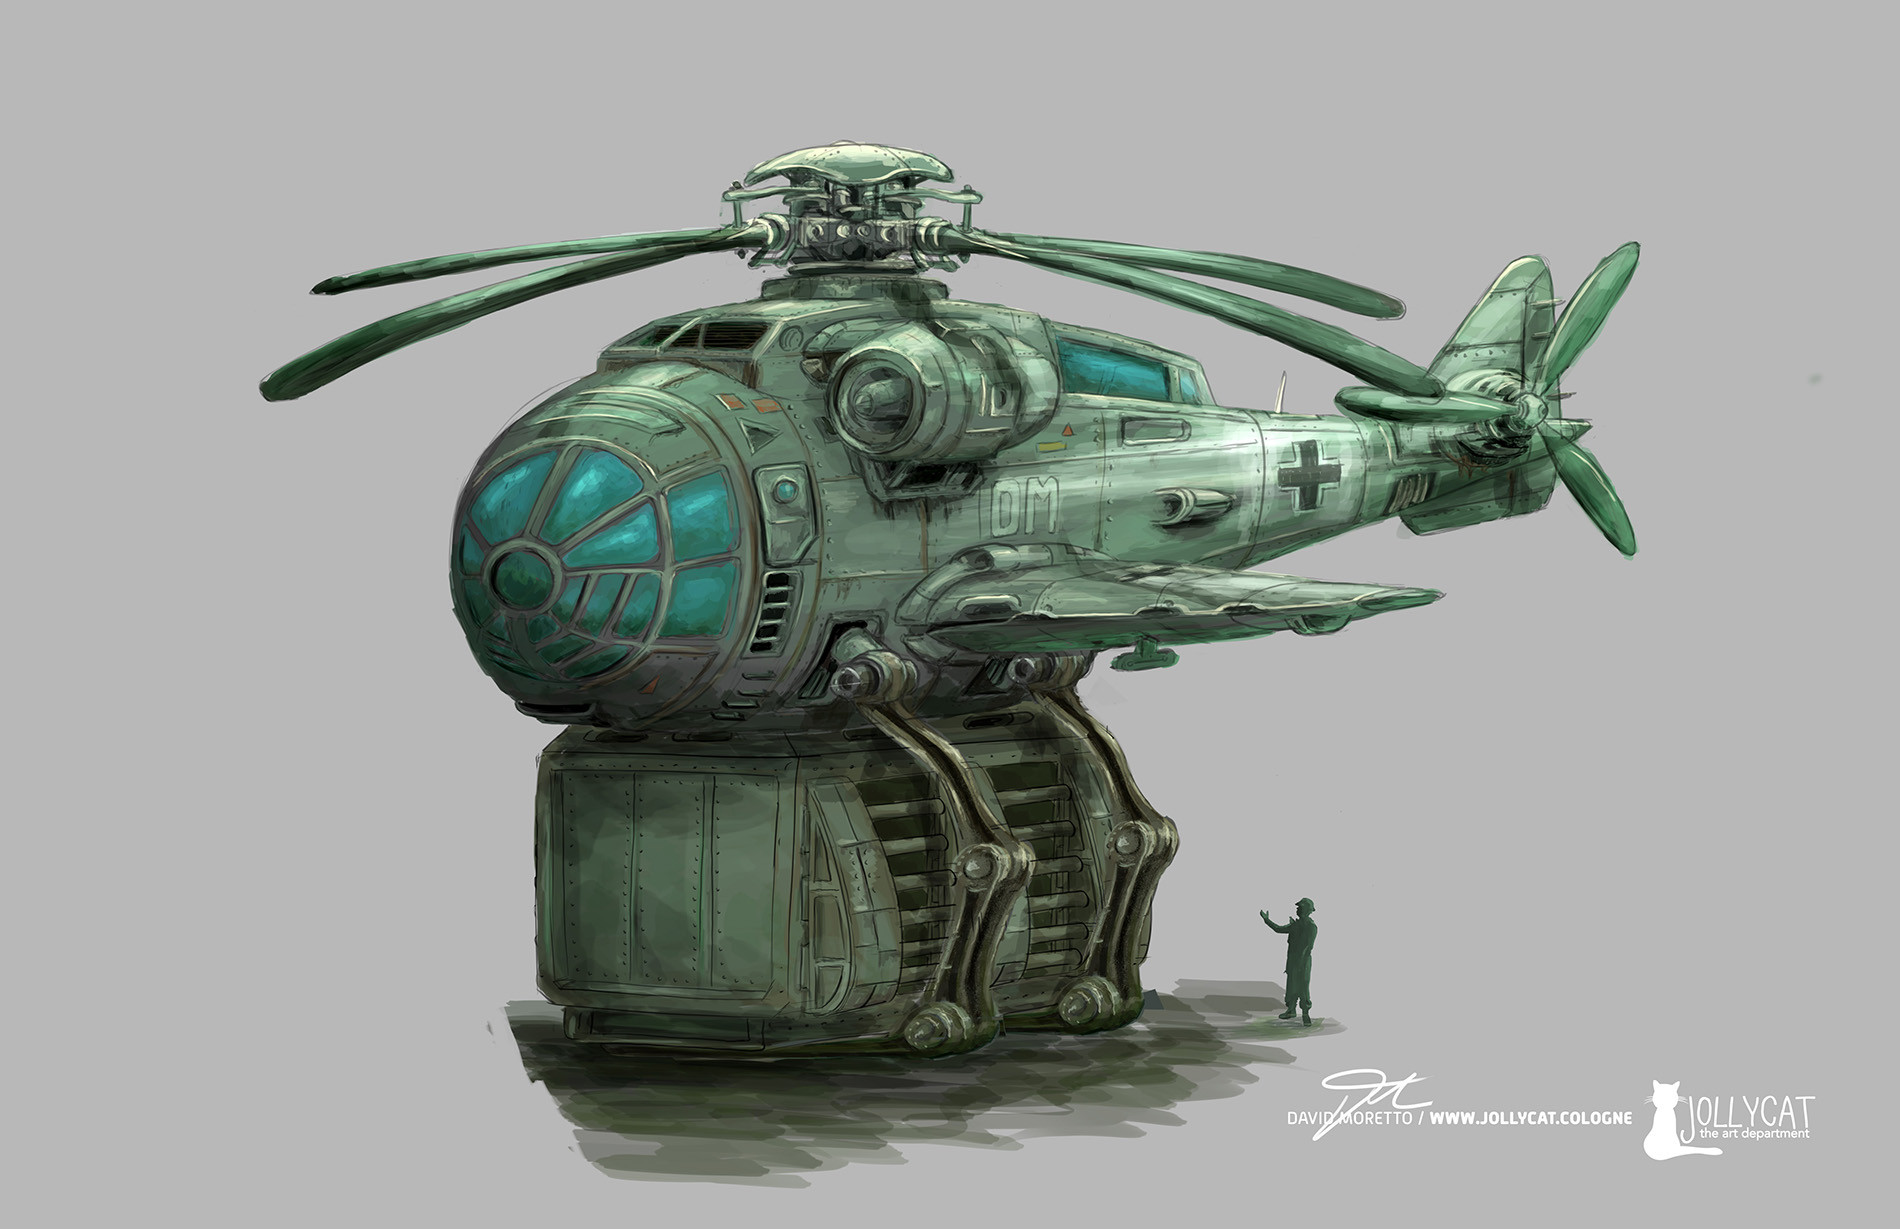 David moretto gottesgreifer conceptart 002b